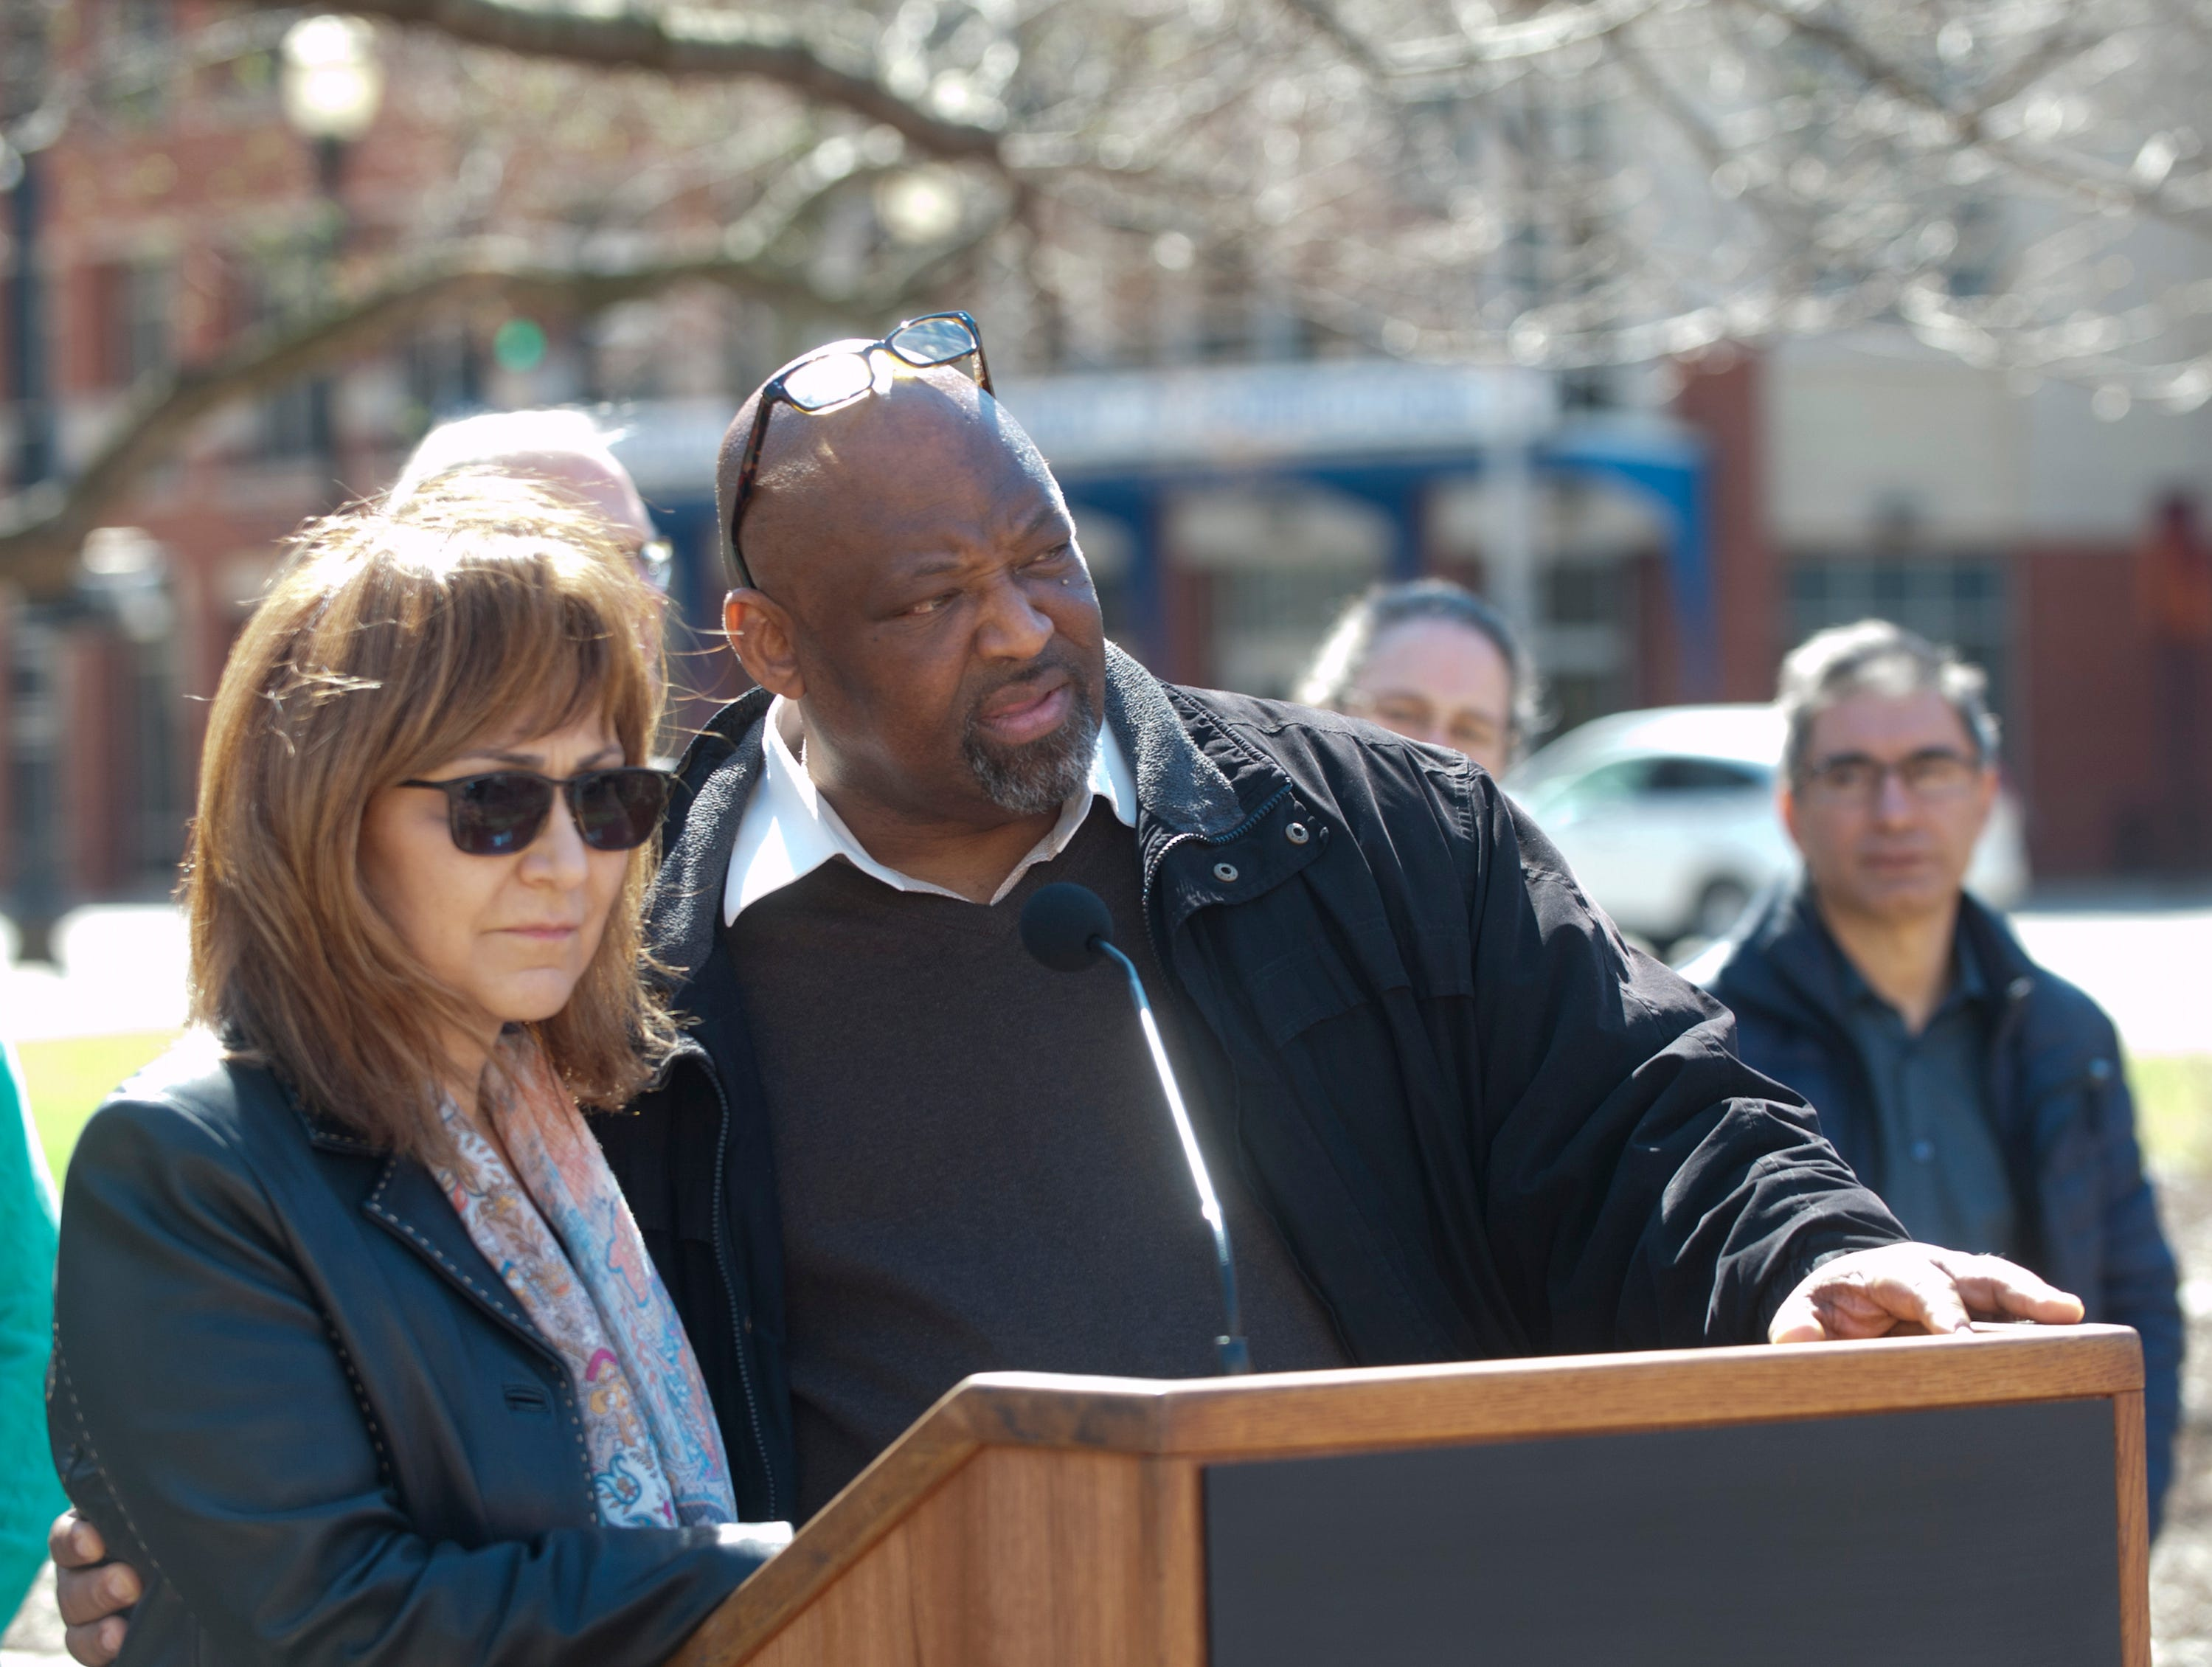 Haleh Karimi, executive director of Louisville's Interfaith Paths to Peace, left, and James Linton, president of Community Connections Group of Louisville, speak at the vigil.